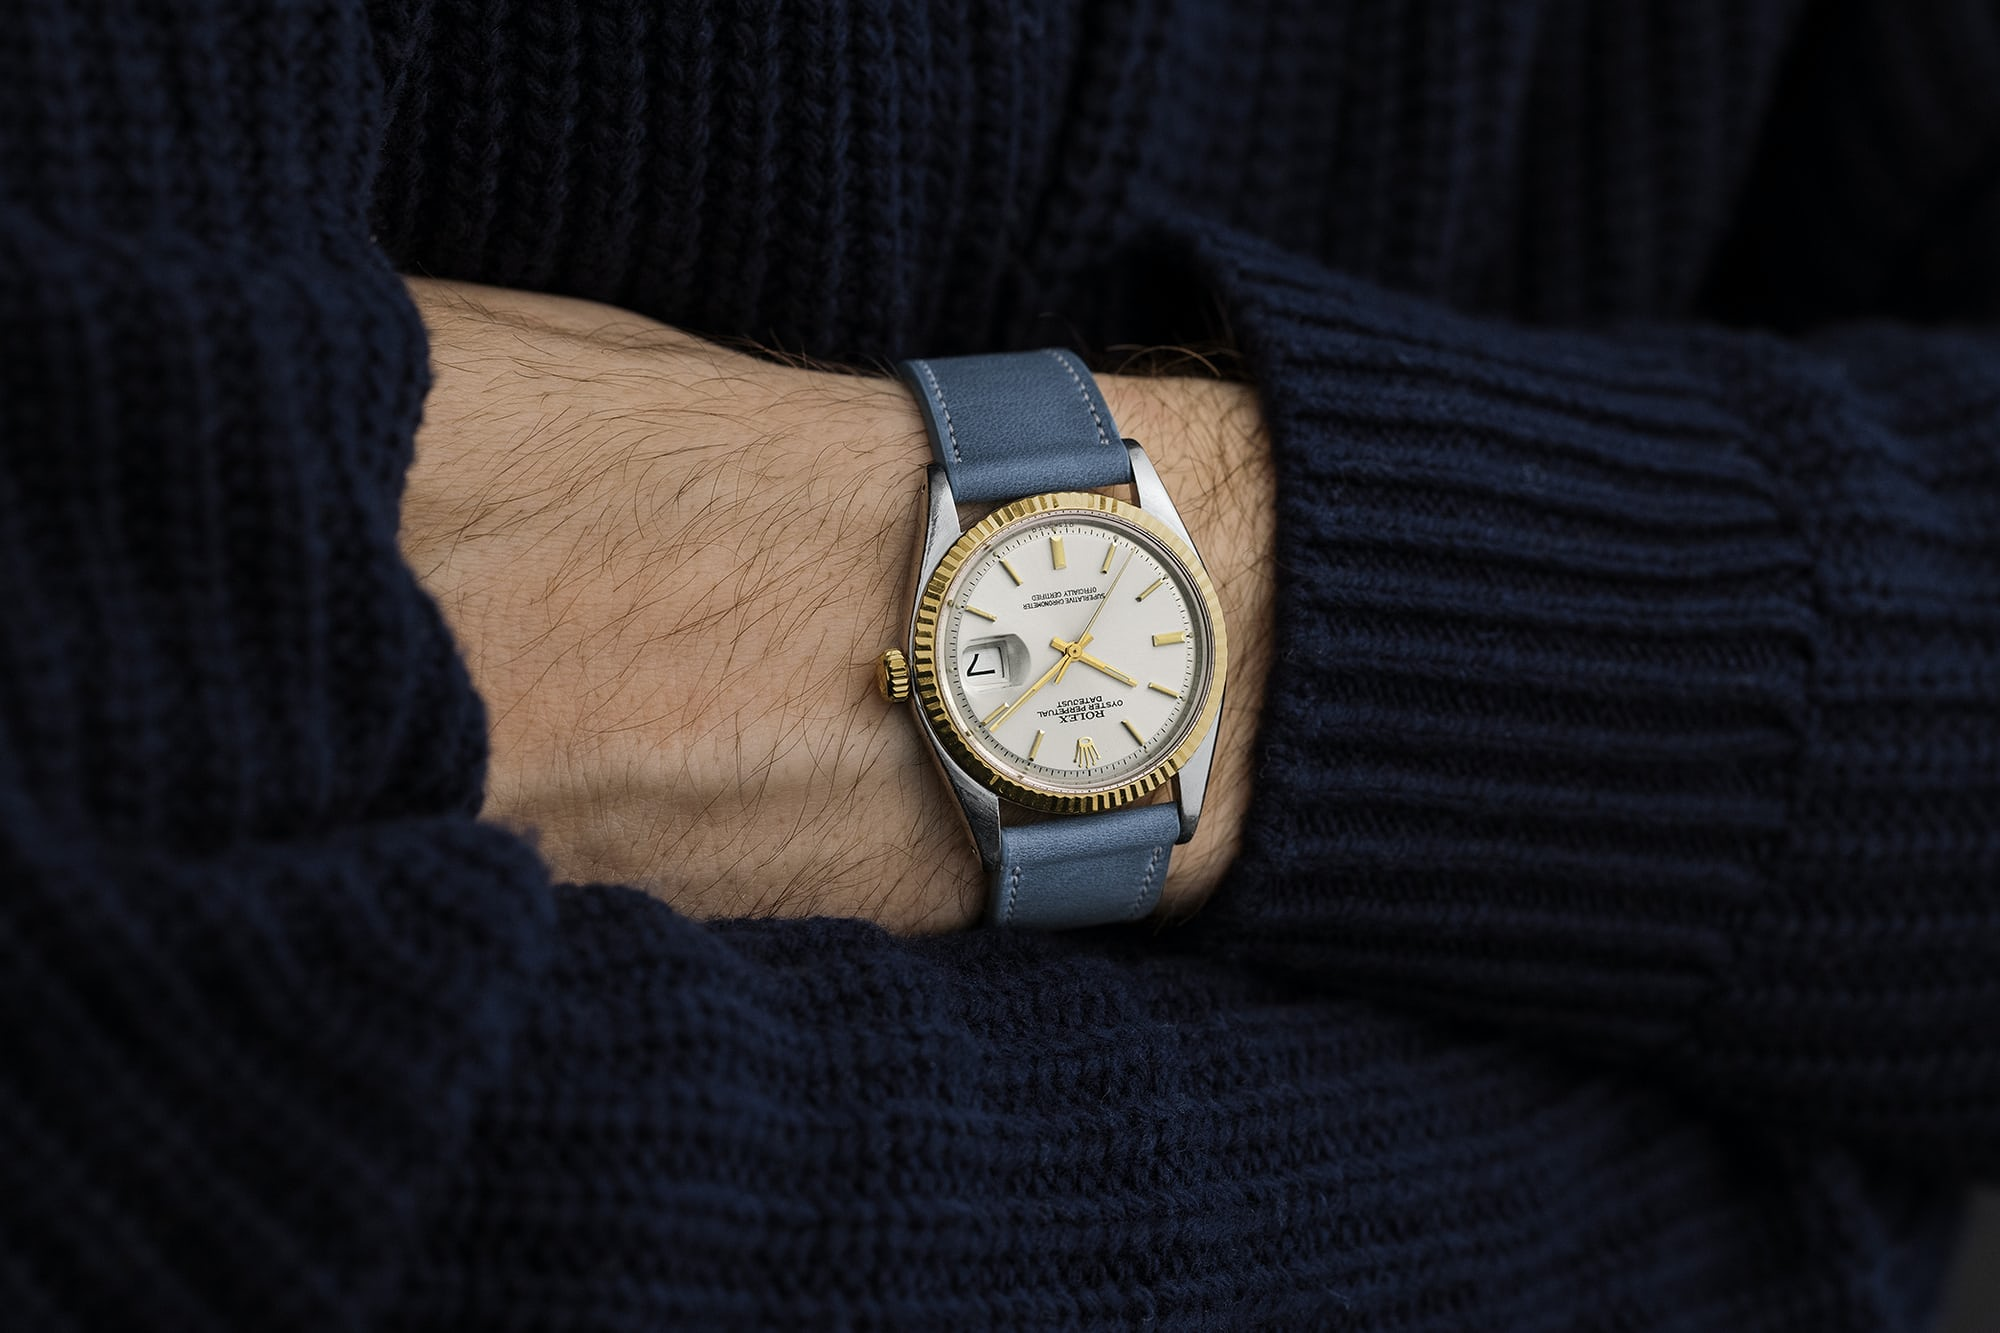 """<p><a href=""""https://shop.hodinkee.com/products/2477-rolex-datejust-two-tone"""" rel=""""noopener"""" target=""""_blank""""><u>1974 Rolex Datejust Ref. 1601 With 'Sigma' Dial In Two Tone</u></a></p>"""